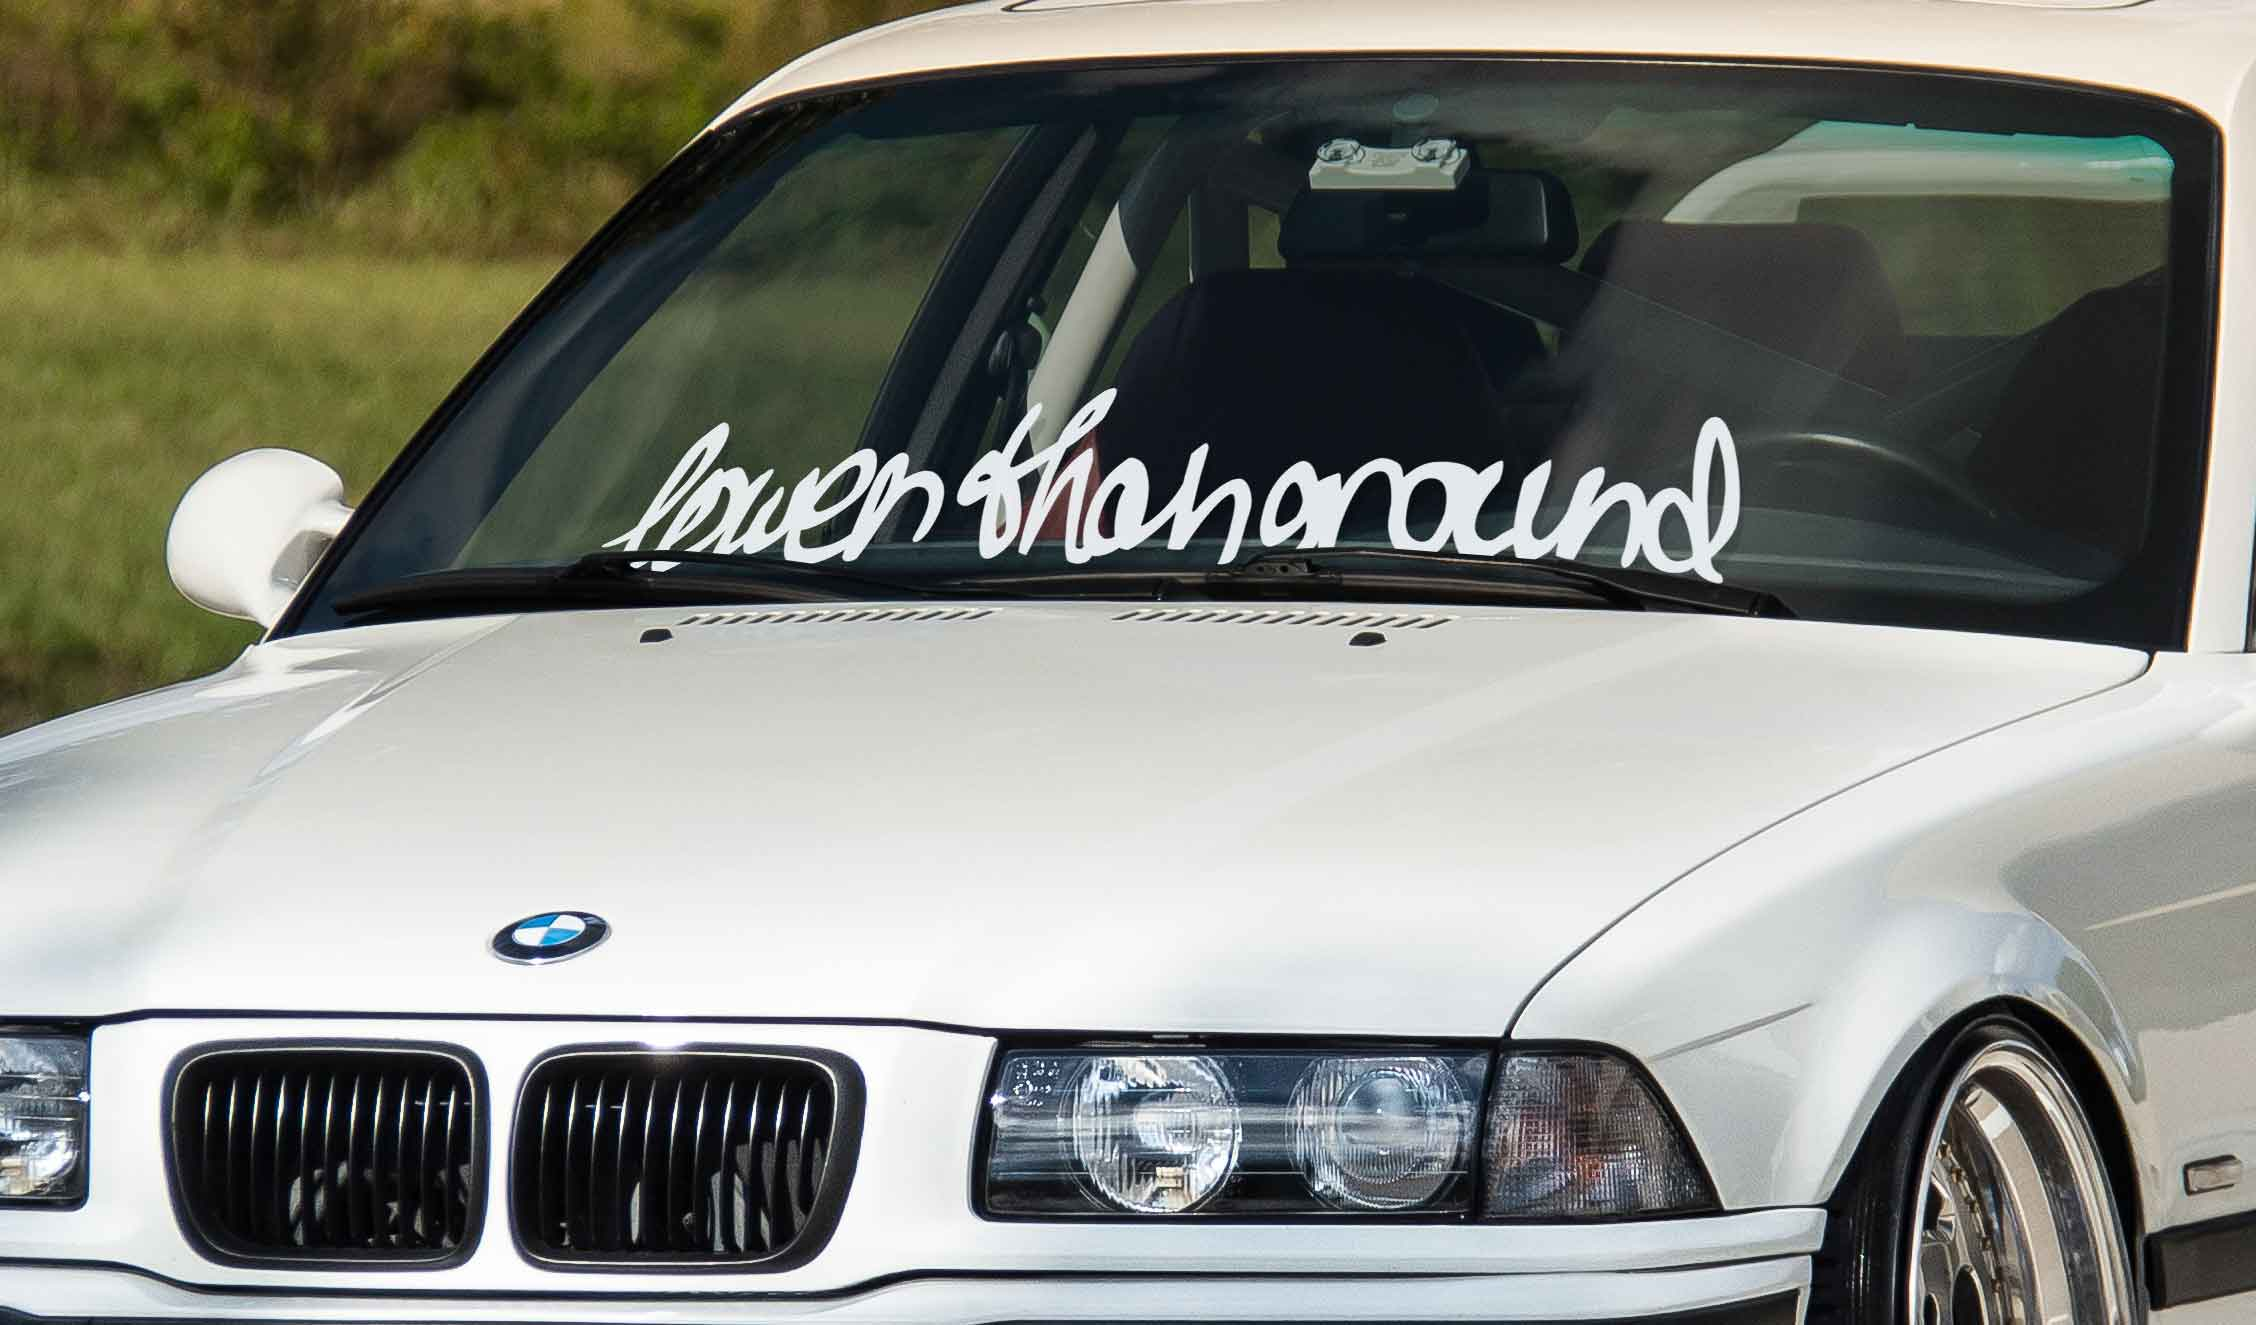 lLower than ground lowered car windshield banner